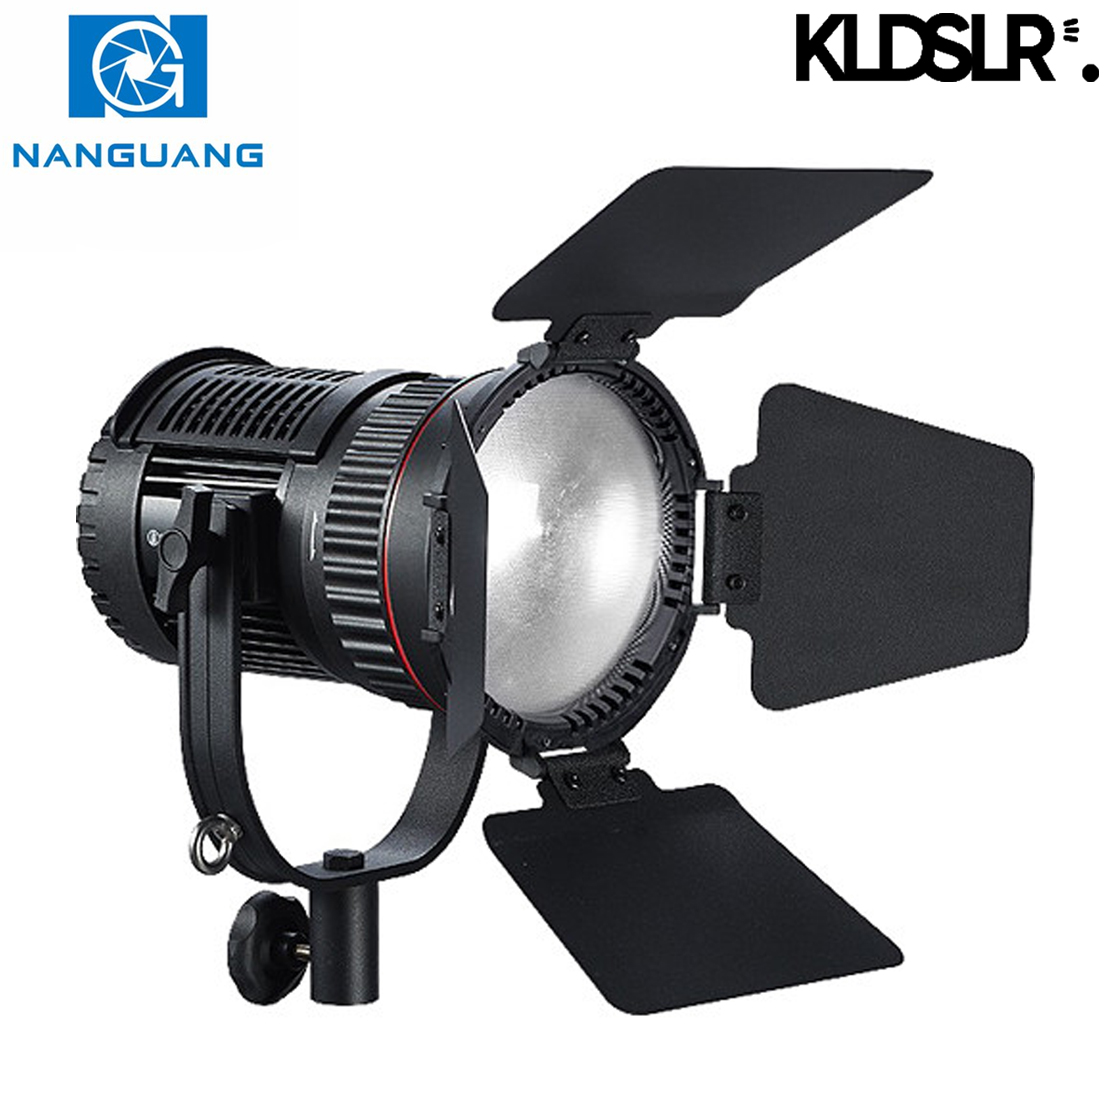 NanGuang CN-30F LED Fresnel Light (CN30F)